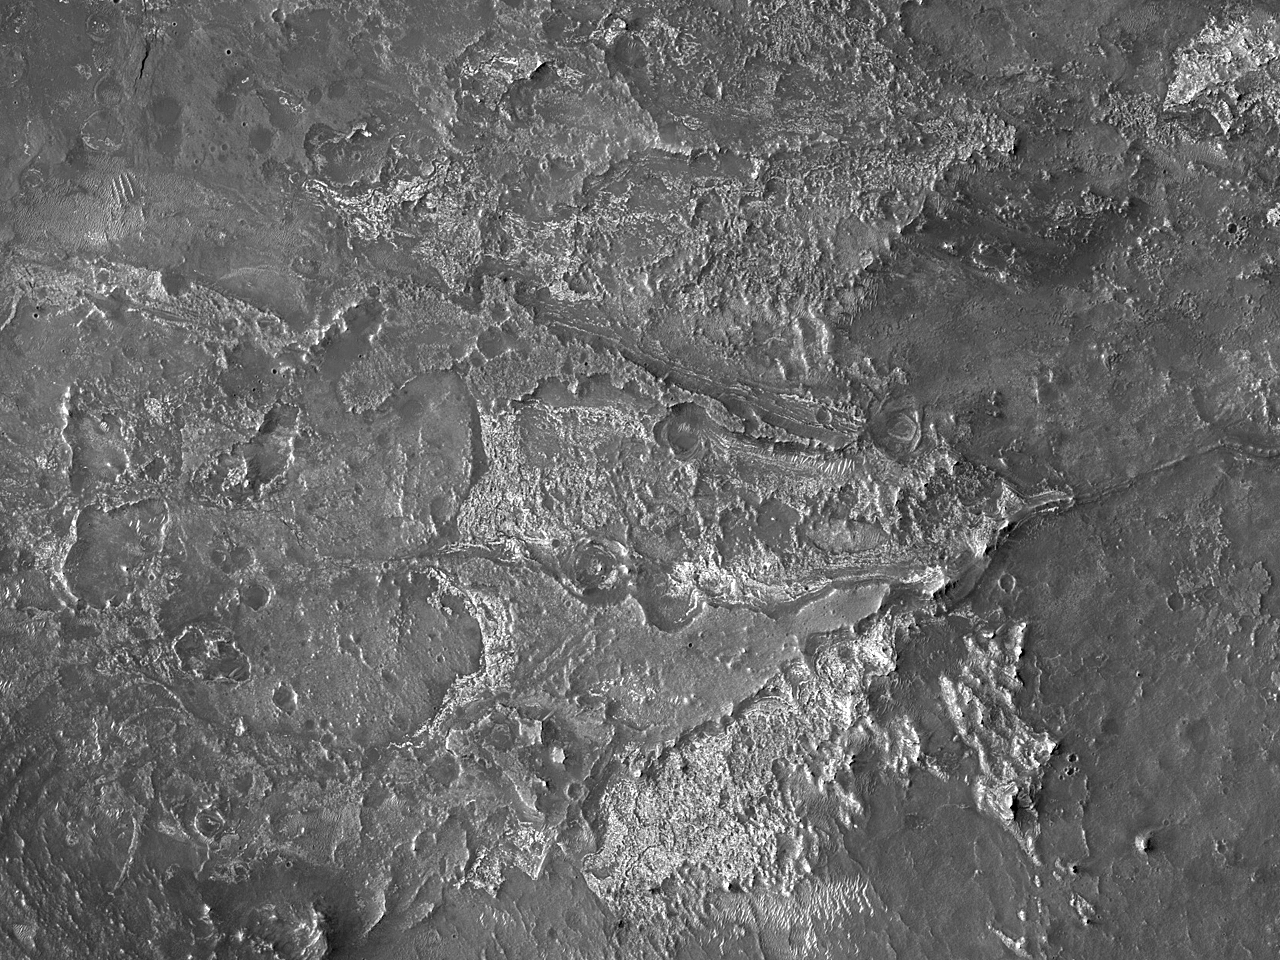 Bedrock Exposures in Northeast Syrtis Major Region